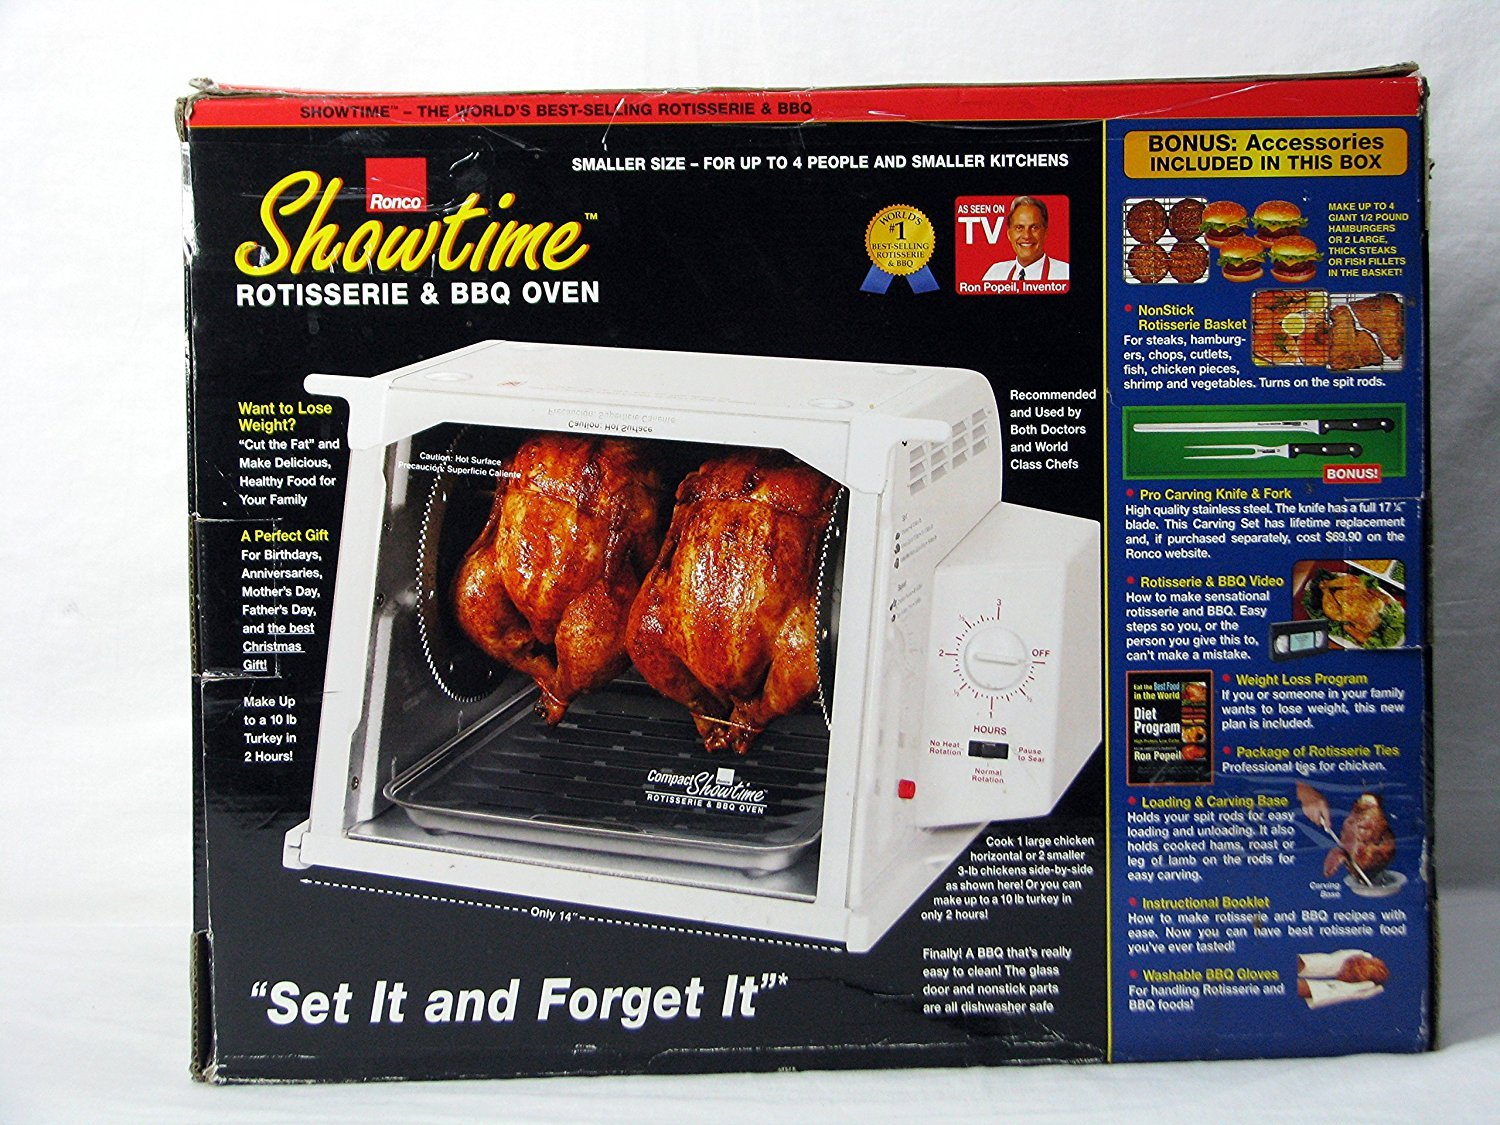 Ronco Showtime Compact Rotisserie & BBQ, White (3000) BONUS Accessory package included